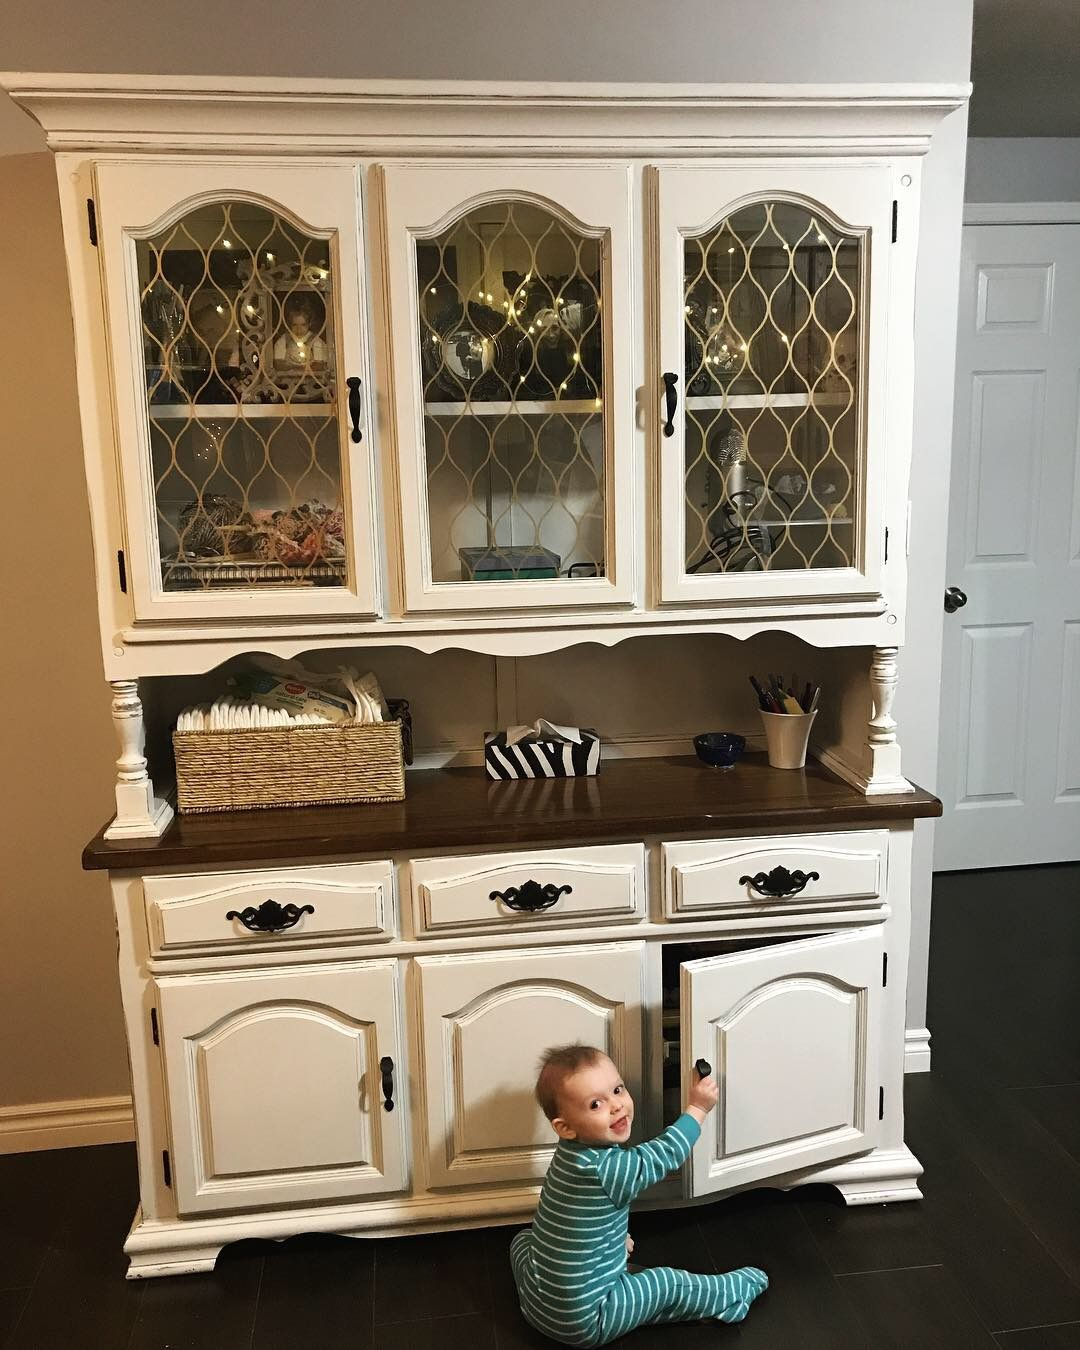 Pin On Diy Furniture And Decorations